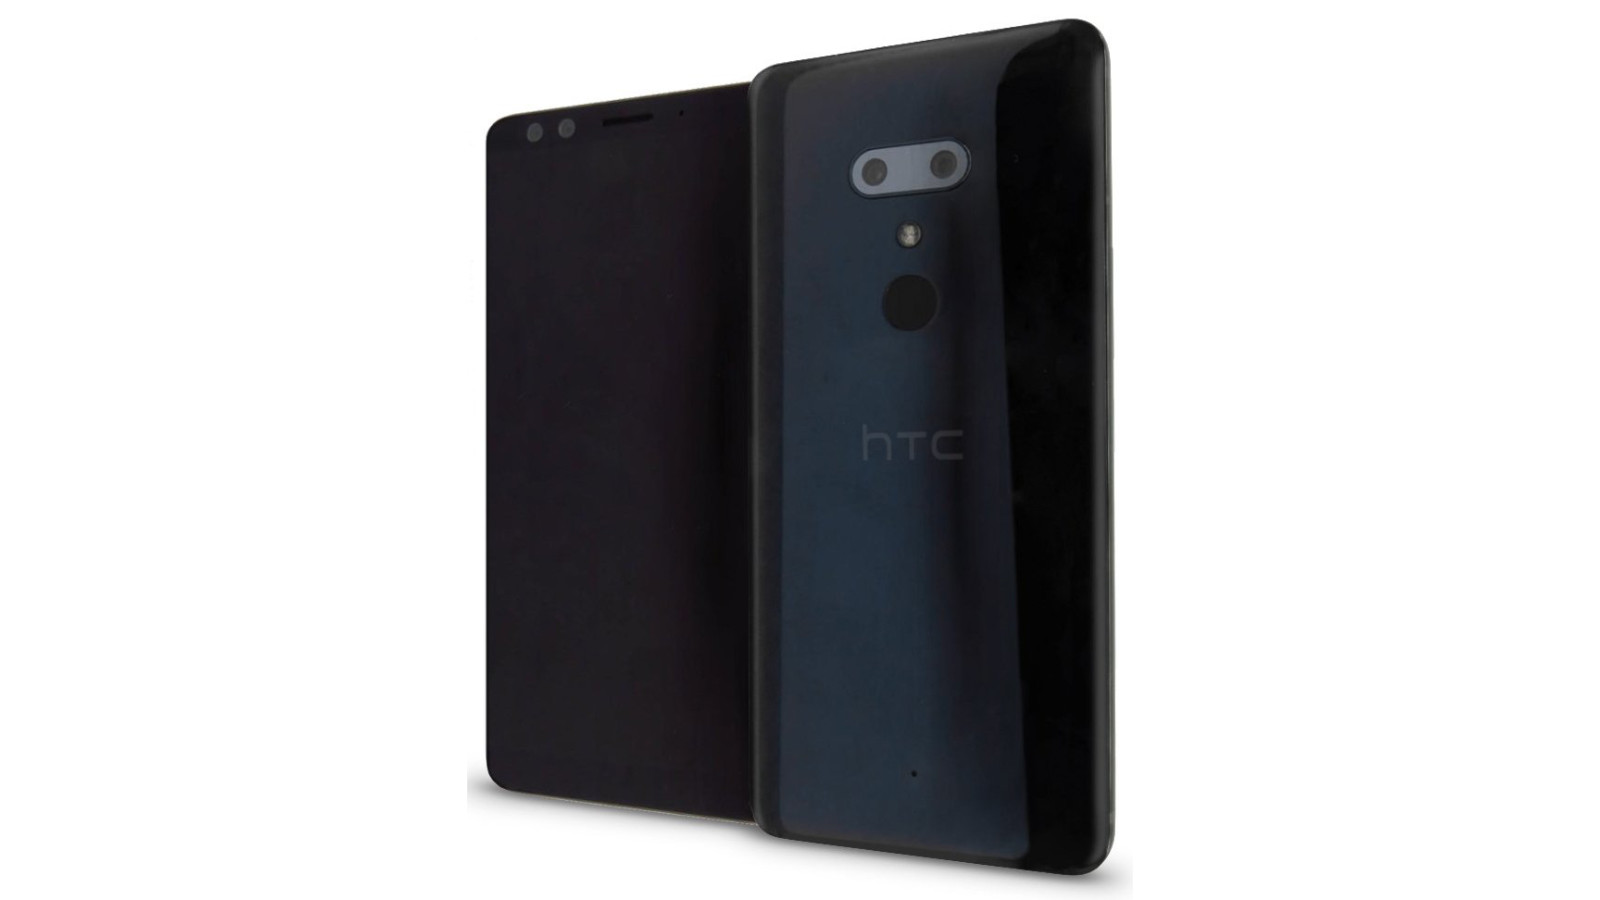 Here's a leaked render of the HTC U12+